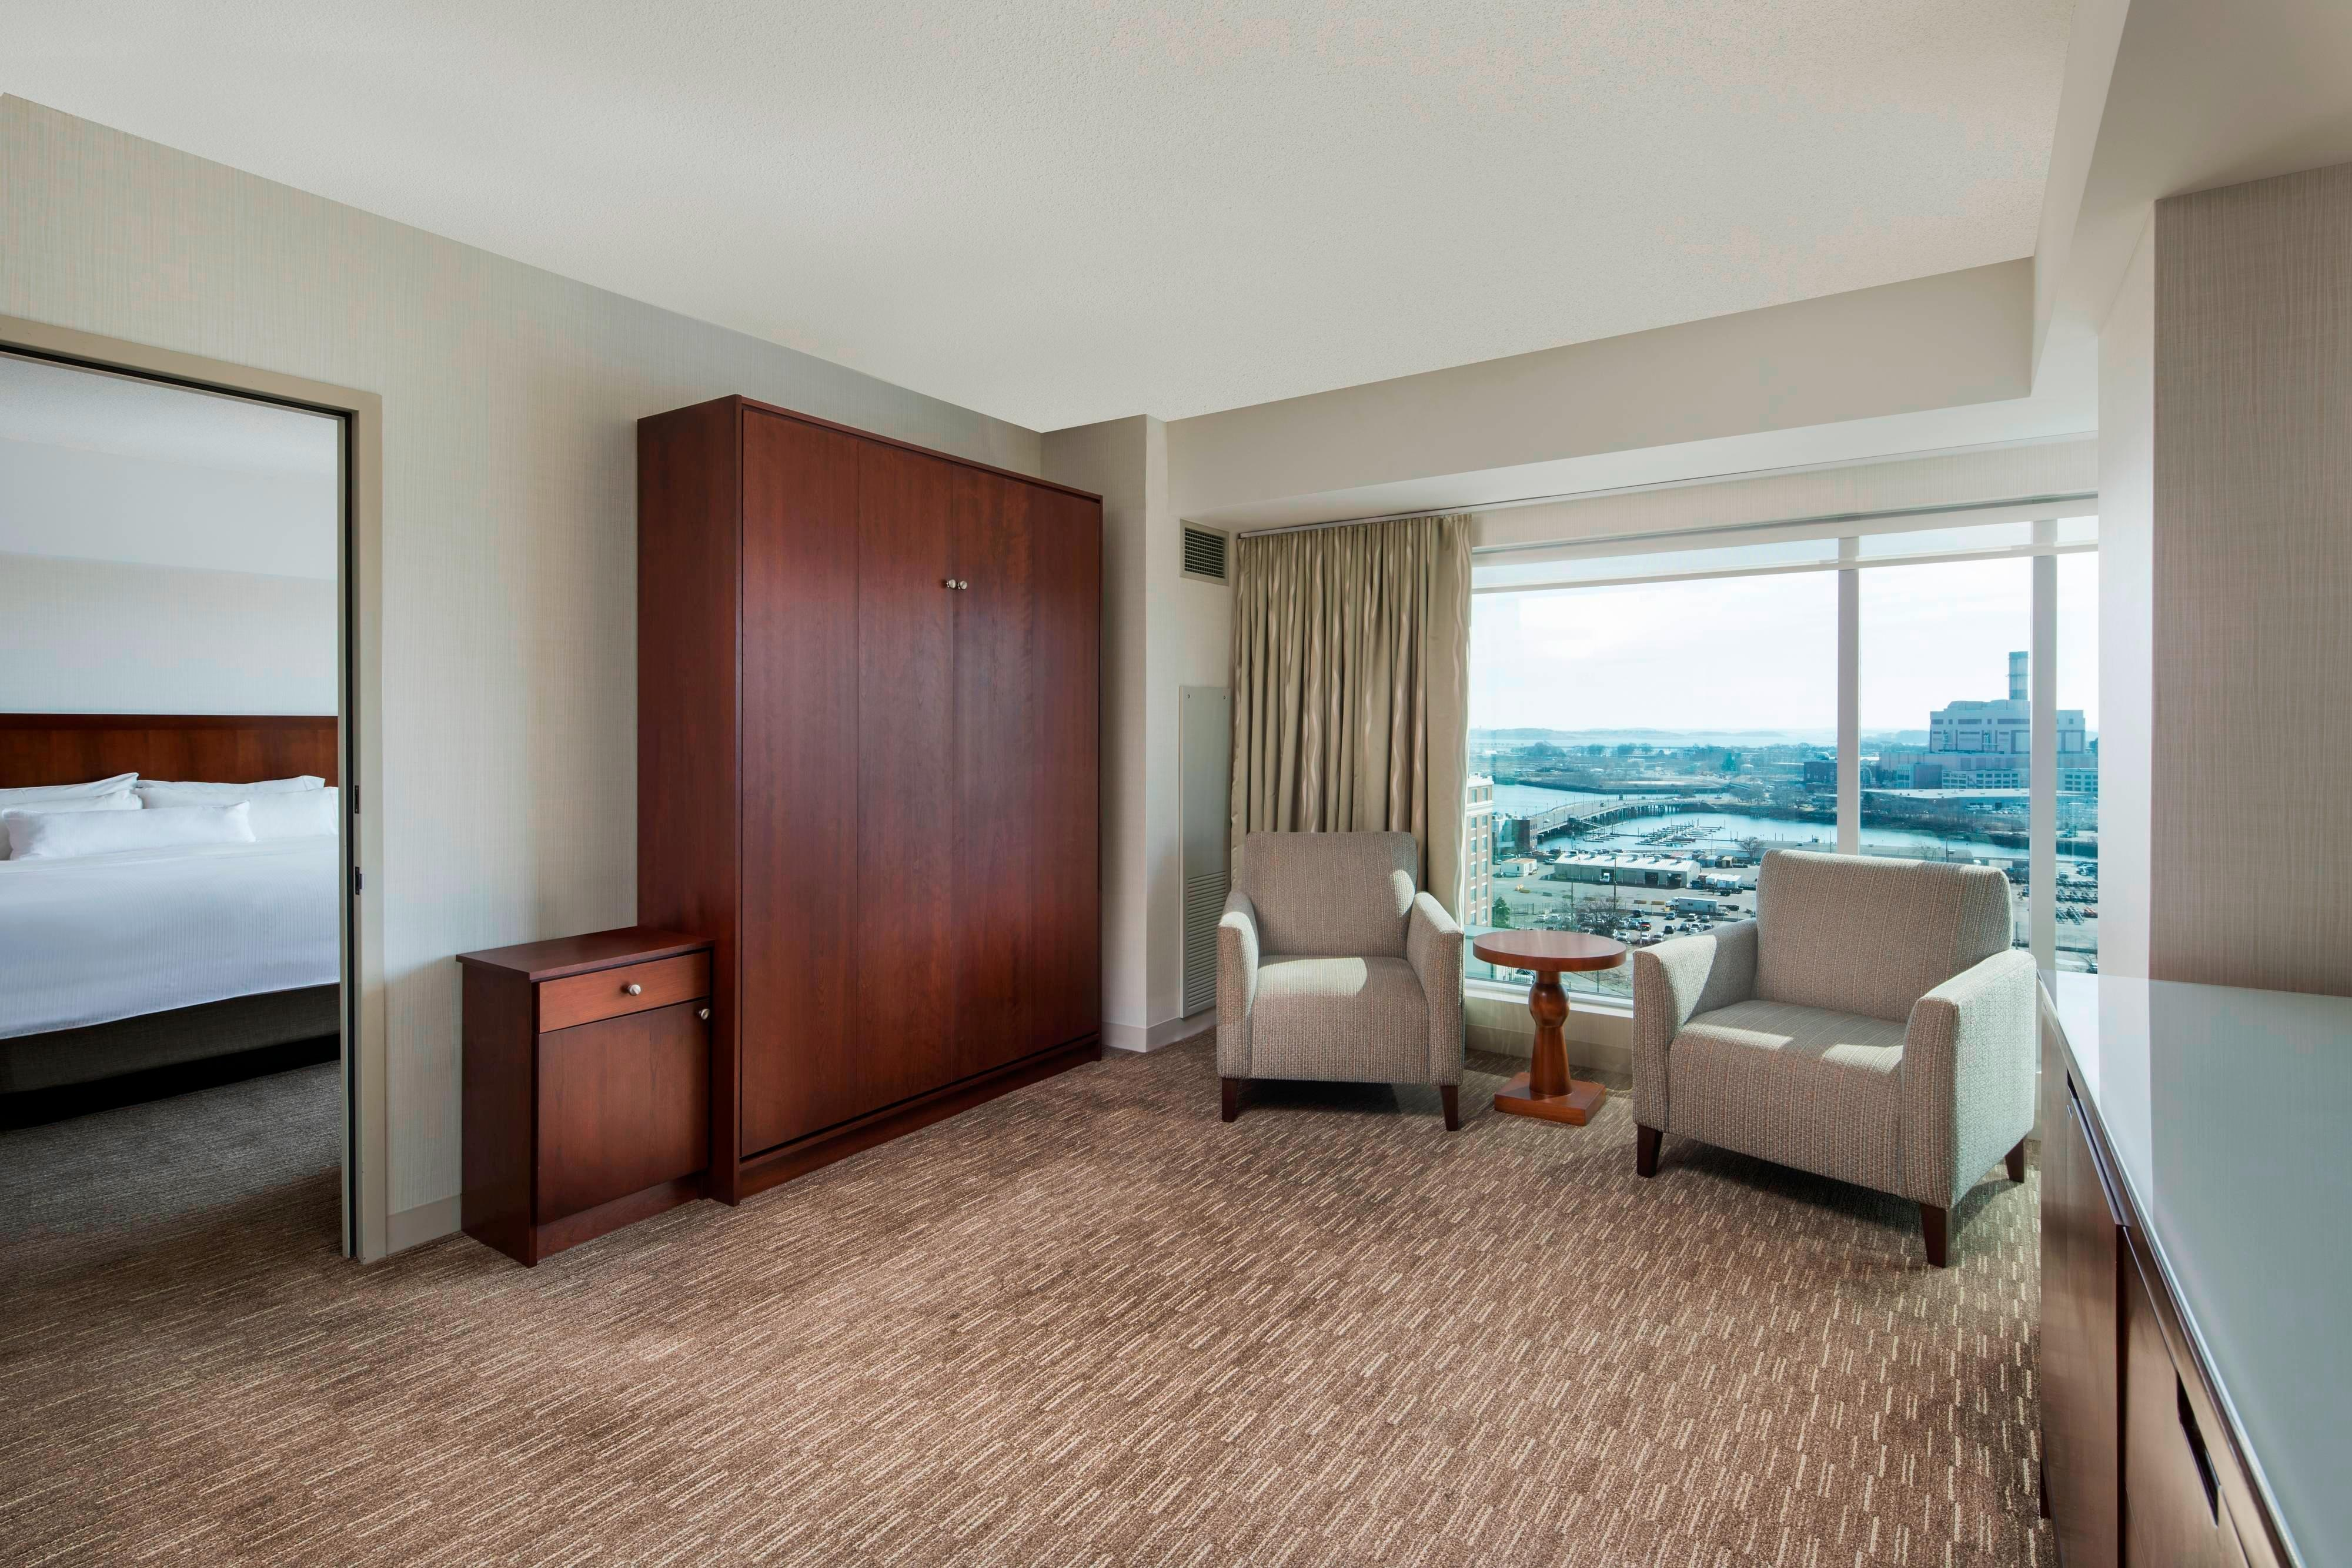 Rooms: Downtown Boston Hotel Rooms Near Waterfront